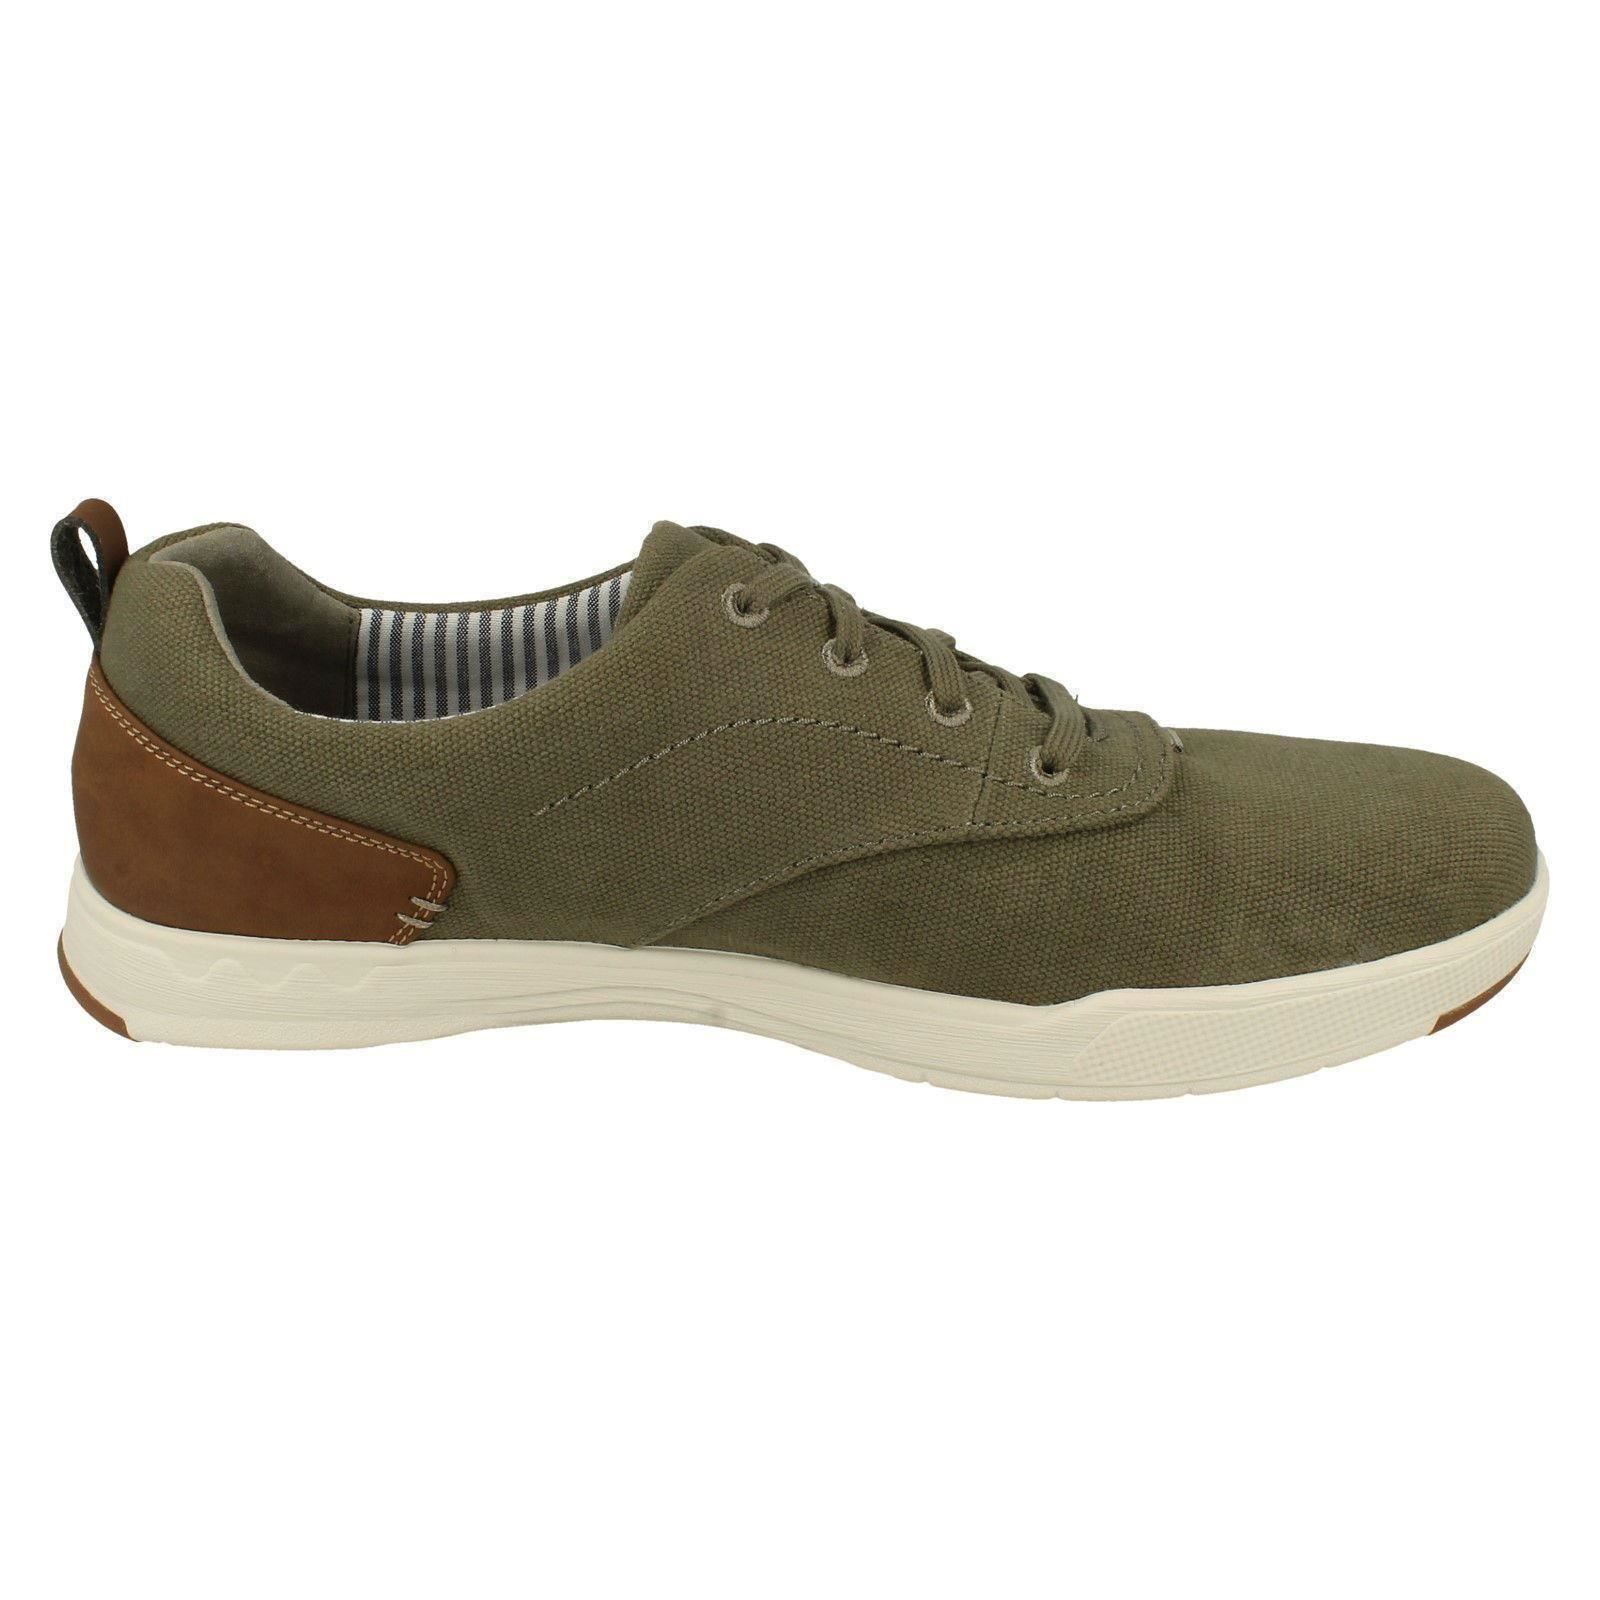 Mens Mens Mens Cloudsteppers by Clarks Lace Up Canvas The Style - Step Isle Crew 75a3ef